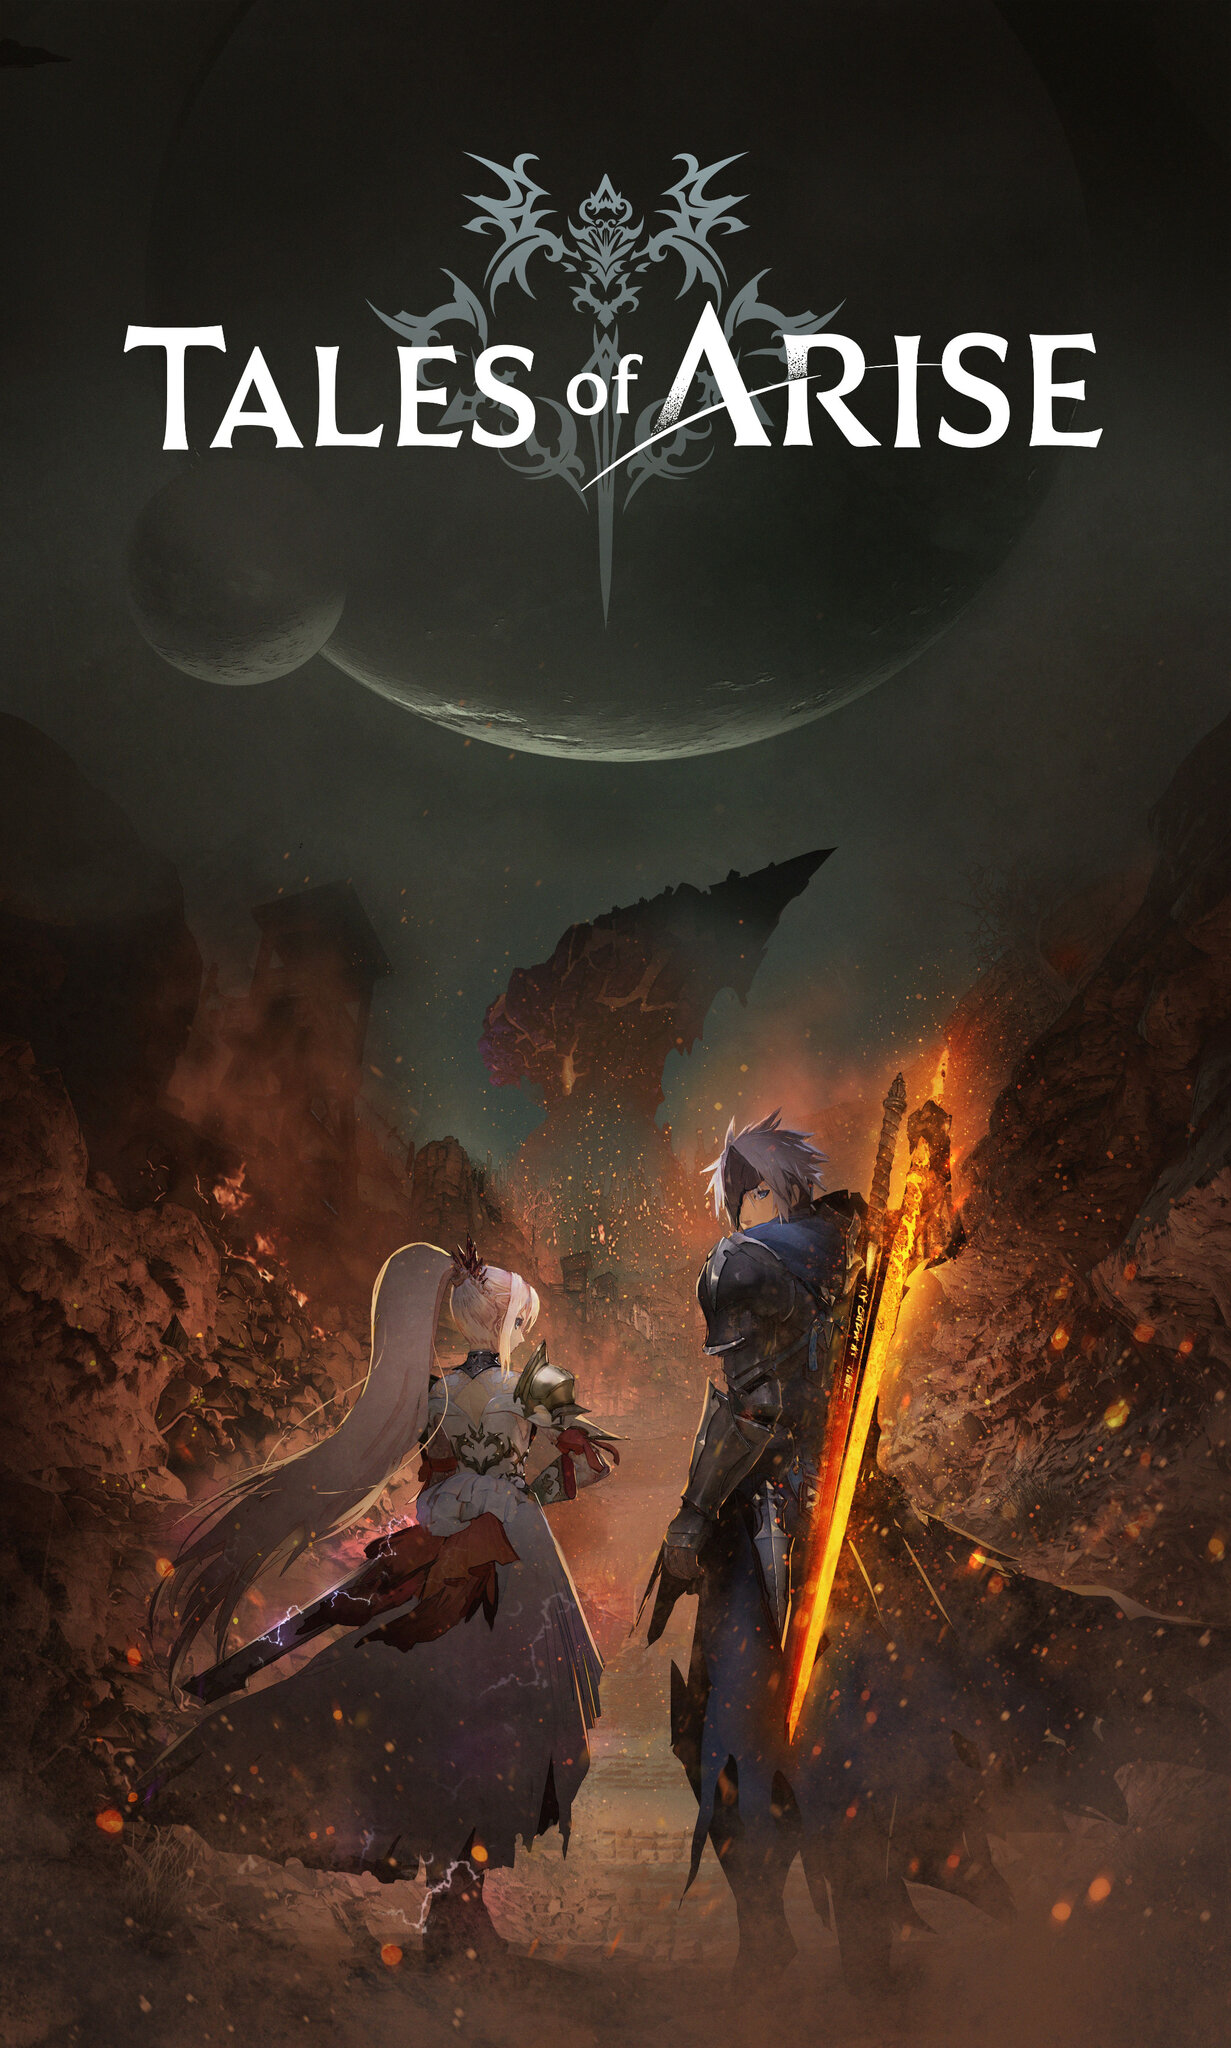 Tales-of-Arise_2019_06-09-19_008